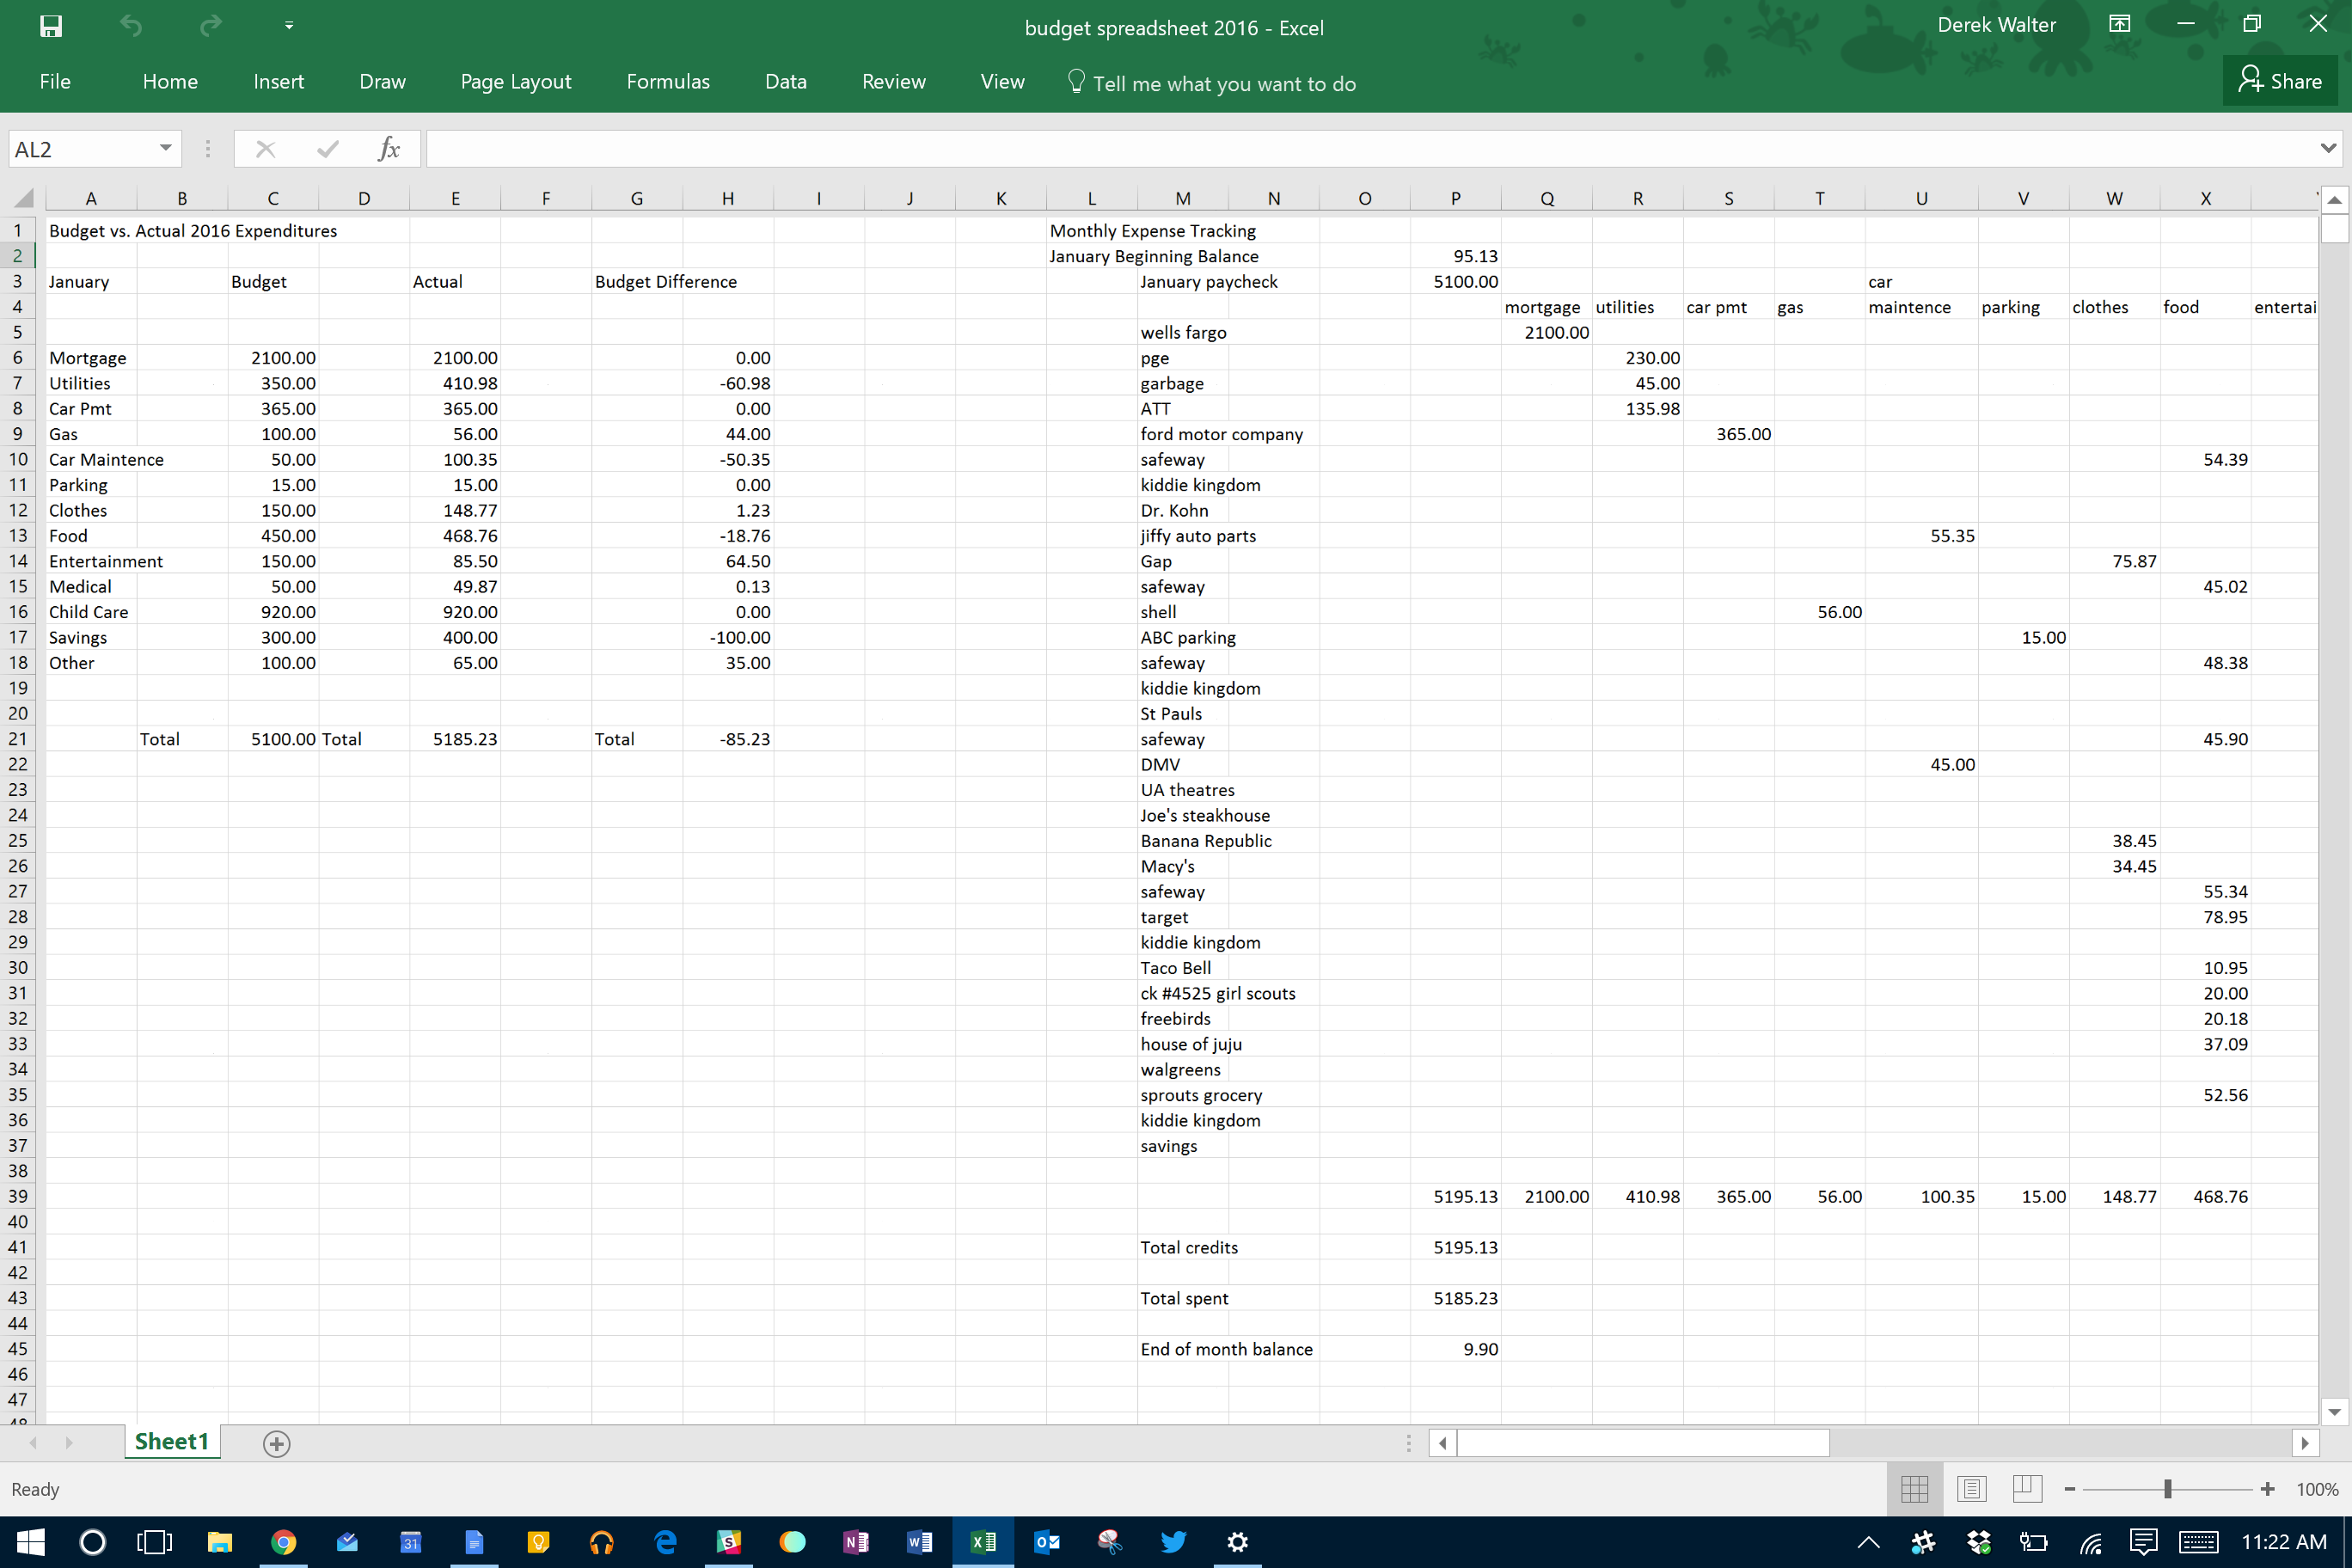 how to make an excel spreadsheet look nice